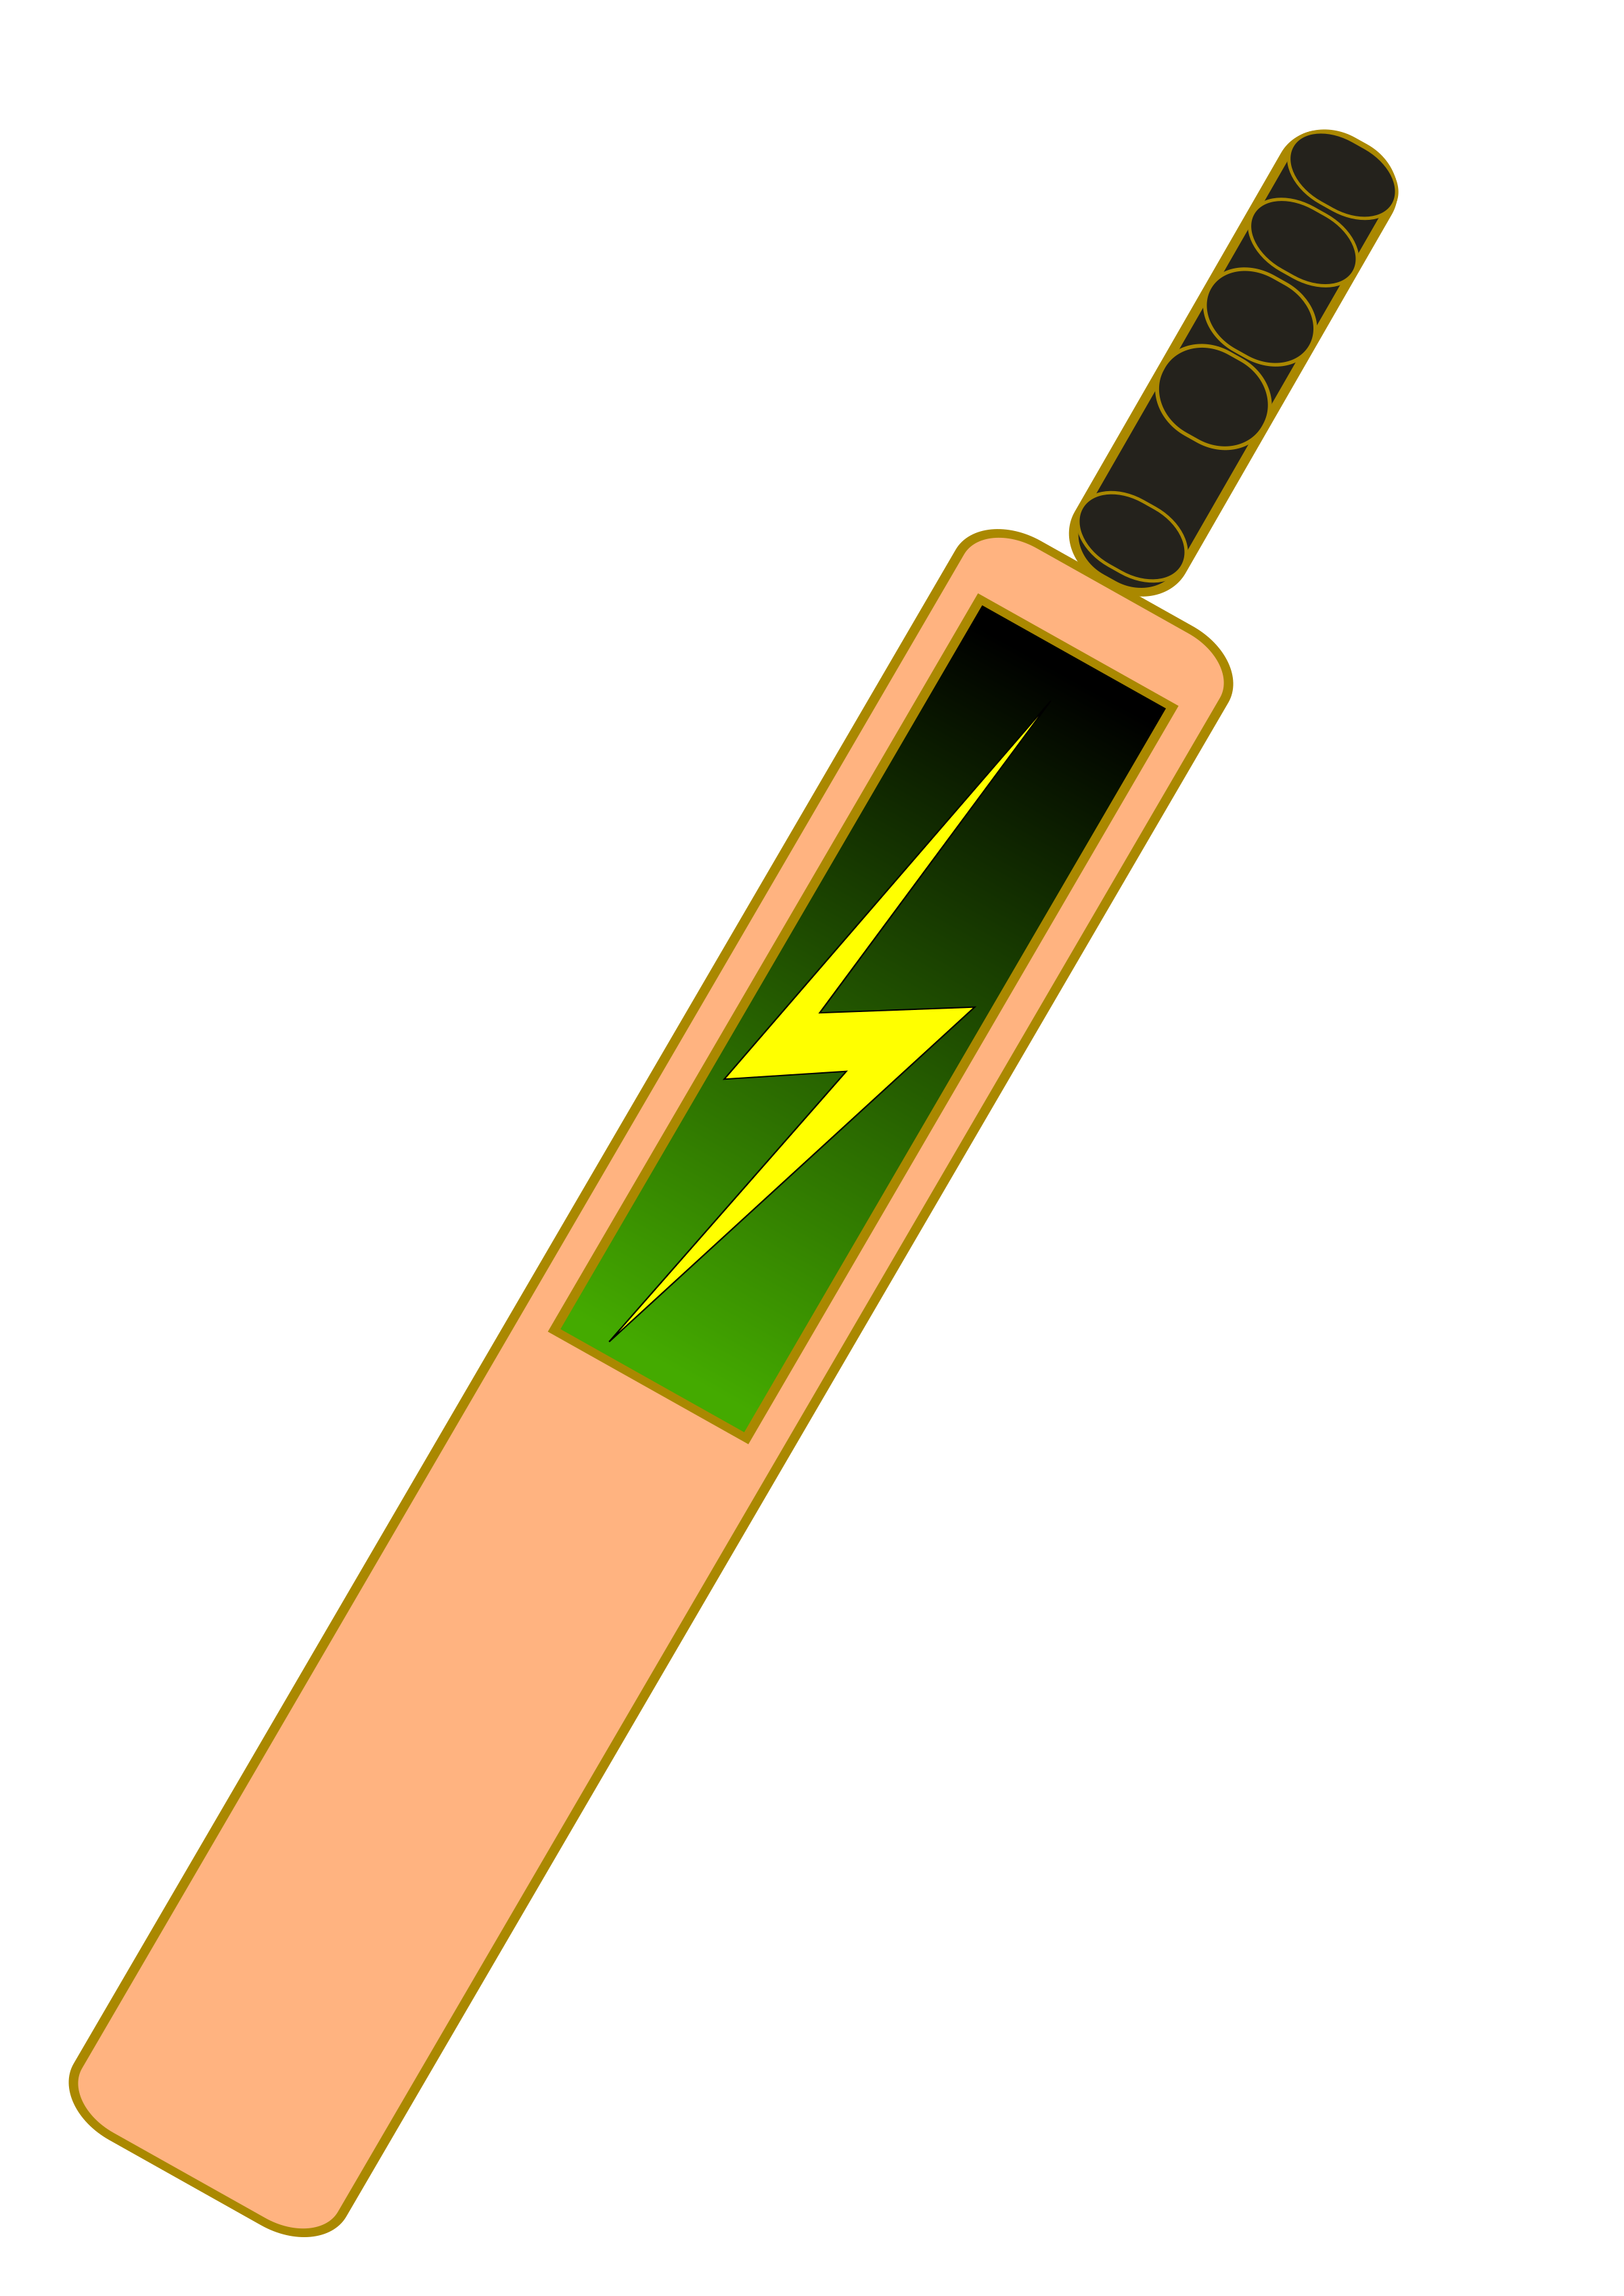 png free download Broken clipart cricket bat.  collection of high